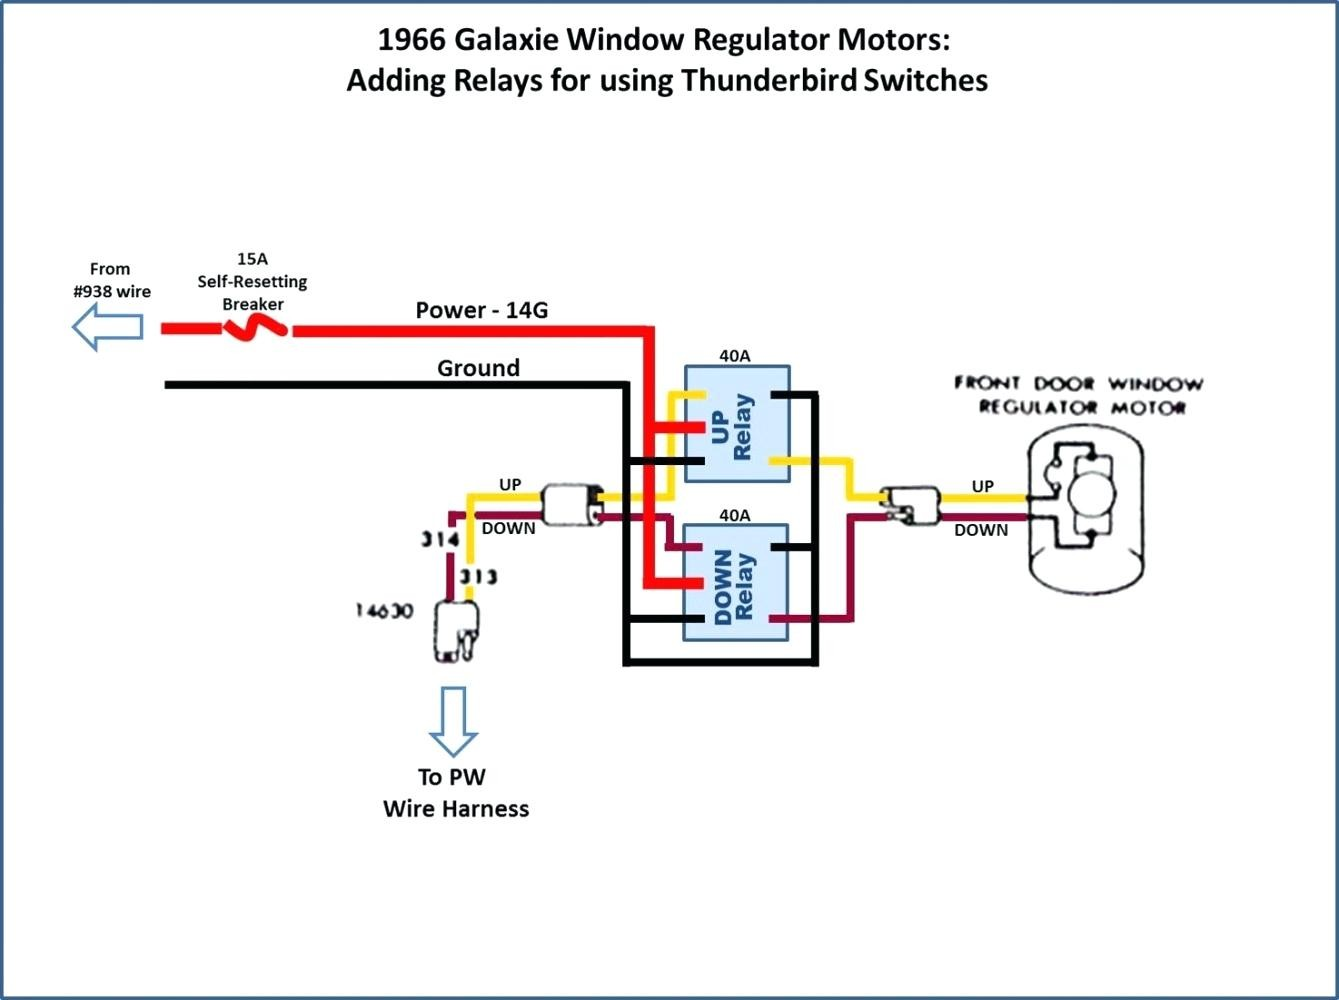 6 pin power window switch wiring diagram wiring diagram image full size of 1995 ford thunderbird wiring diagram boat trailer lights 7 pin 4 connector electrical asfbconference2016 Choice Image